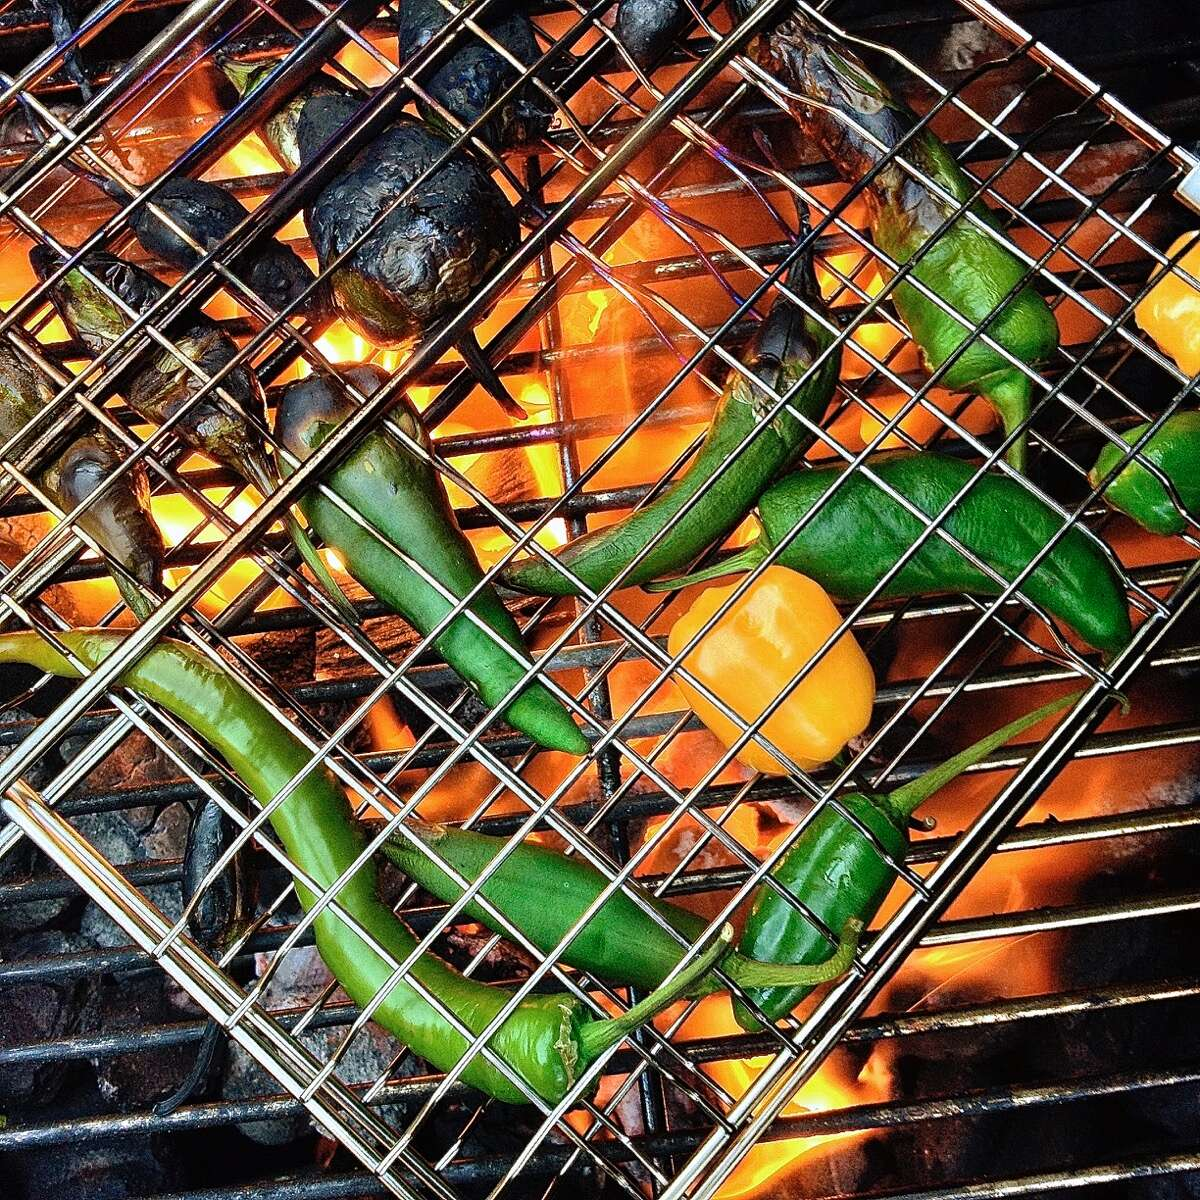 Serrano peppers and small yellow bell peppers charring on an open-flame grill.